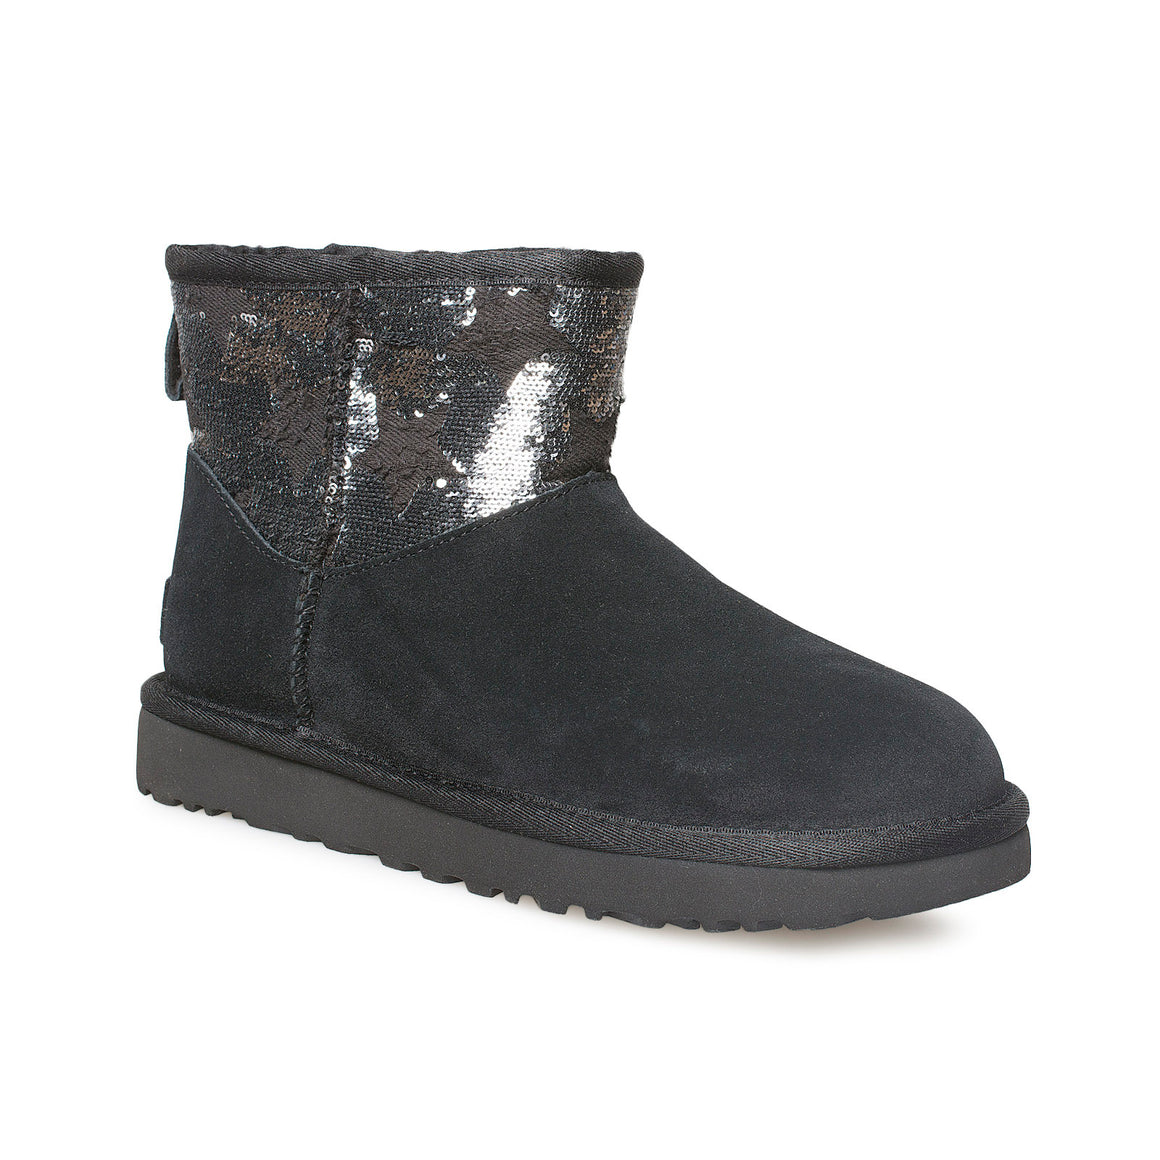 UGG Classic Mini Sequin Stars Black Boots - Women's